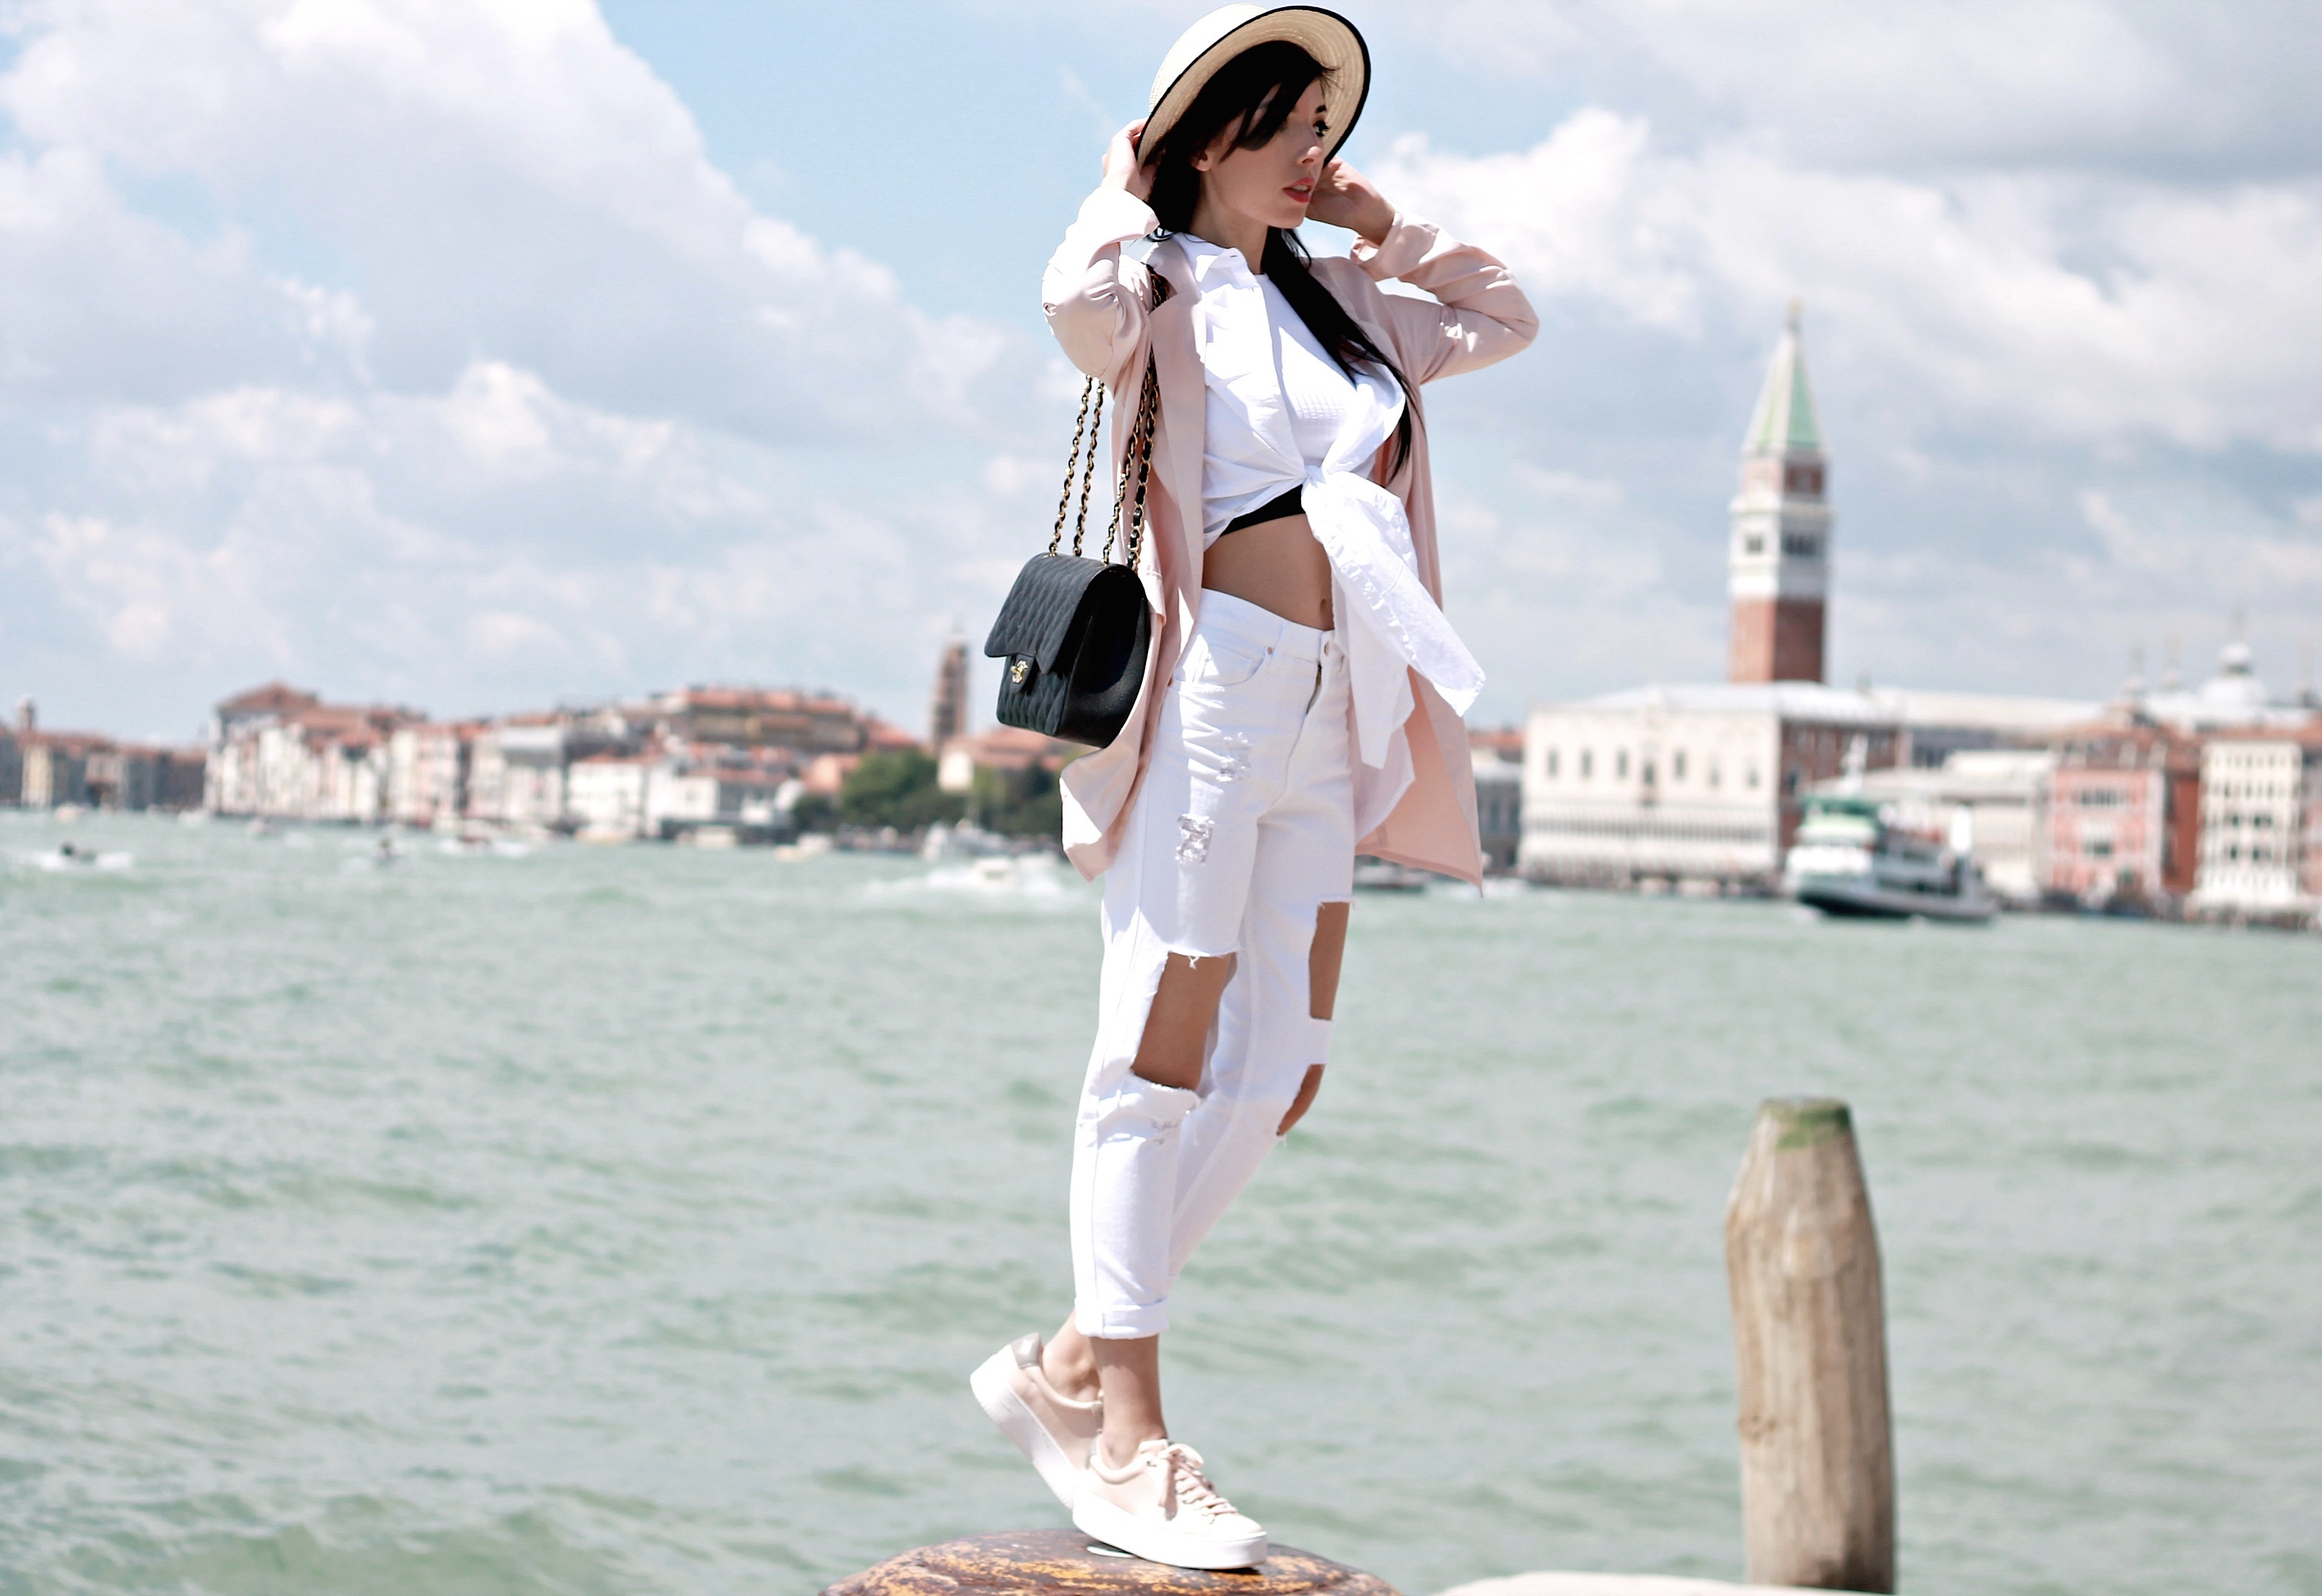 che cosa succede oggi, theladycracy.it, elisa bellino, fashion blogger italiane, fashion blogger famose, web influencer italiane, fashion blogger outfit summer 2016, outfit primavera estate 2016, jeans strappati stradivarius, blazer rosa stradivarius, borsa chanel 2.55 timeless grande autentica, fashion blog italia, fashion bloggers outfit 2016, sneakers stradivarius pink nude, elisa bellino, stylish blogger, sporty chic look idea blogger, crop top stradivarius estate 2016, fashion editorial venezia blogger, influencer marketing, branded content e native advertising